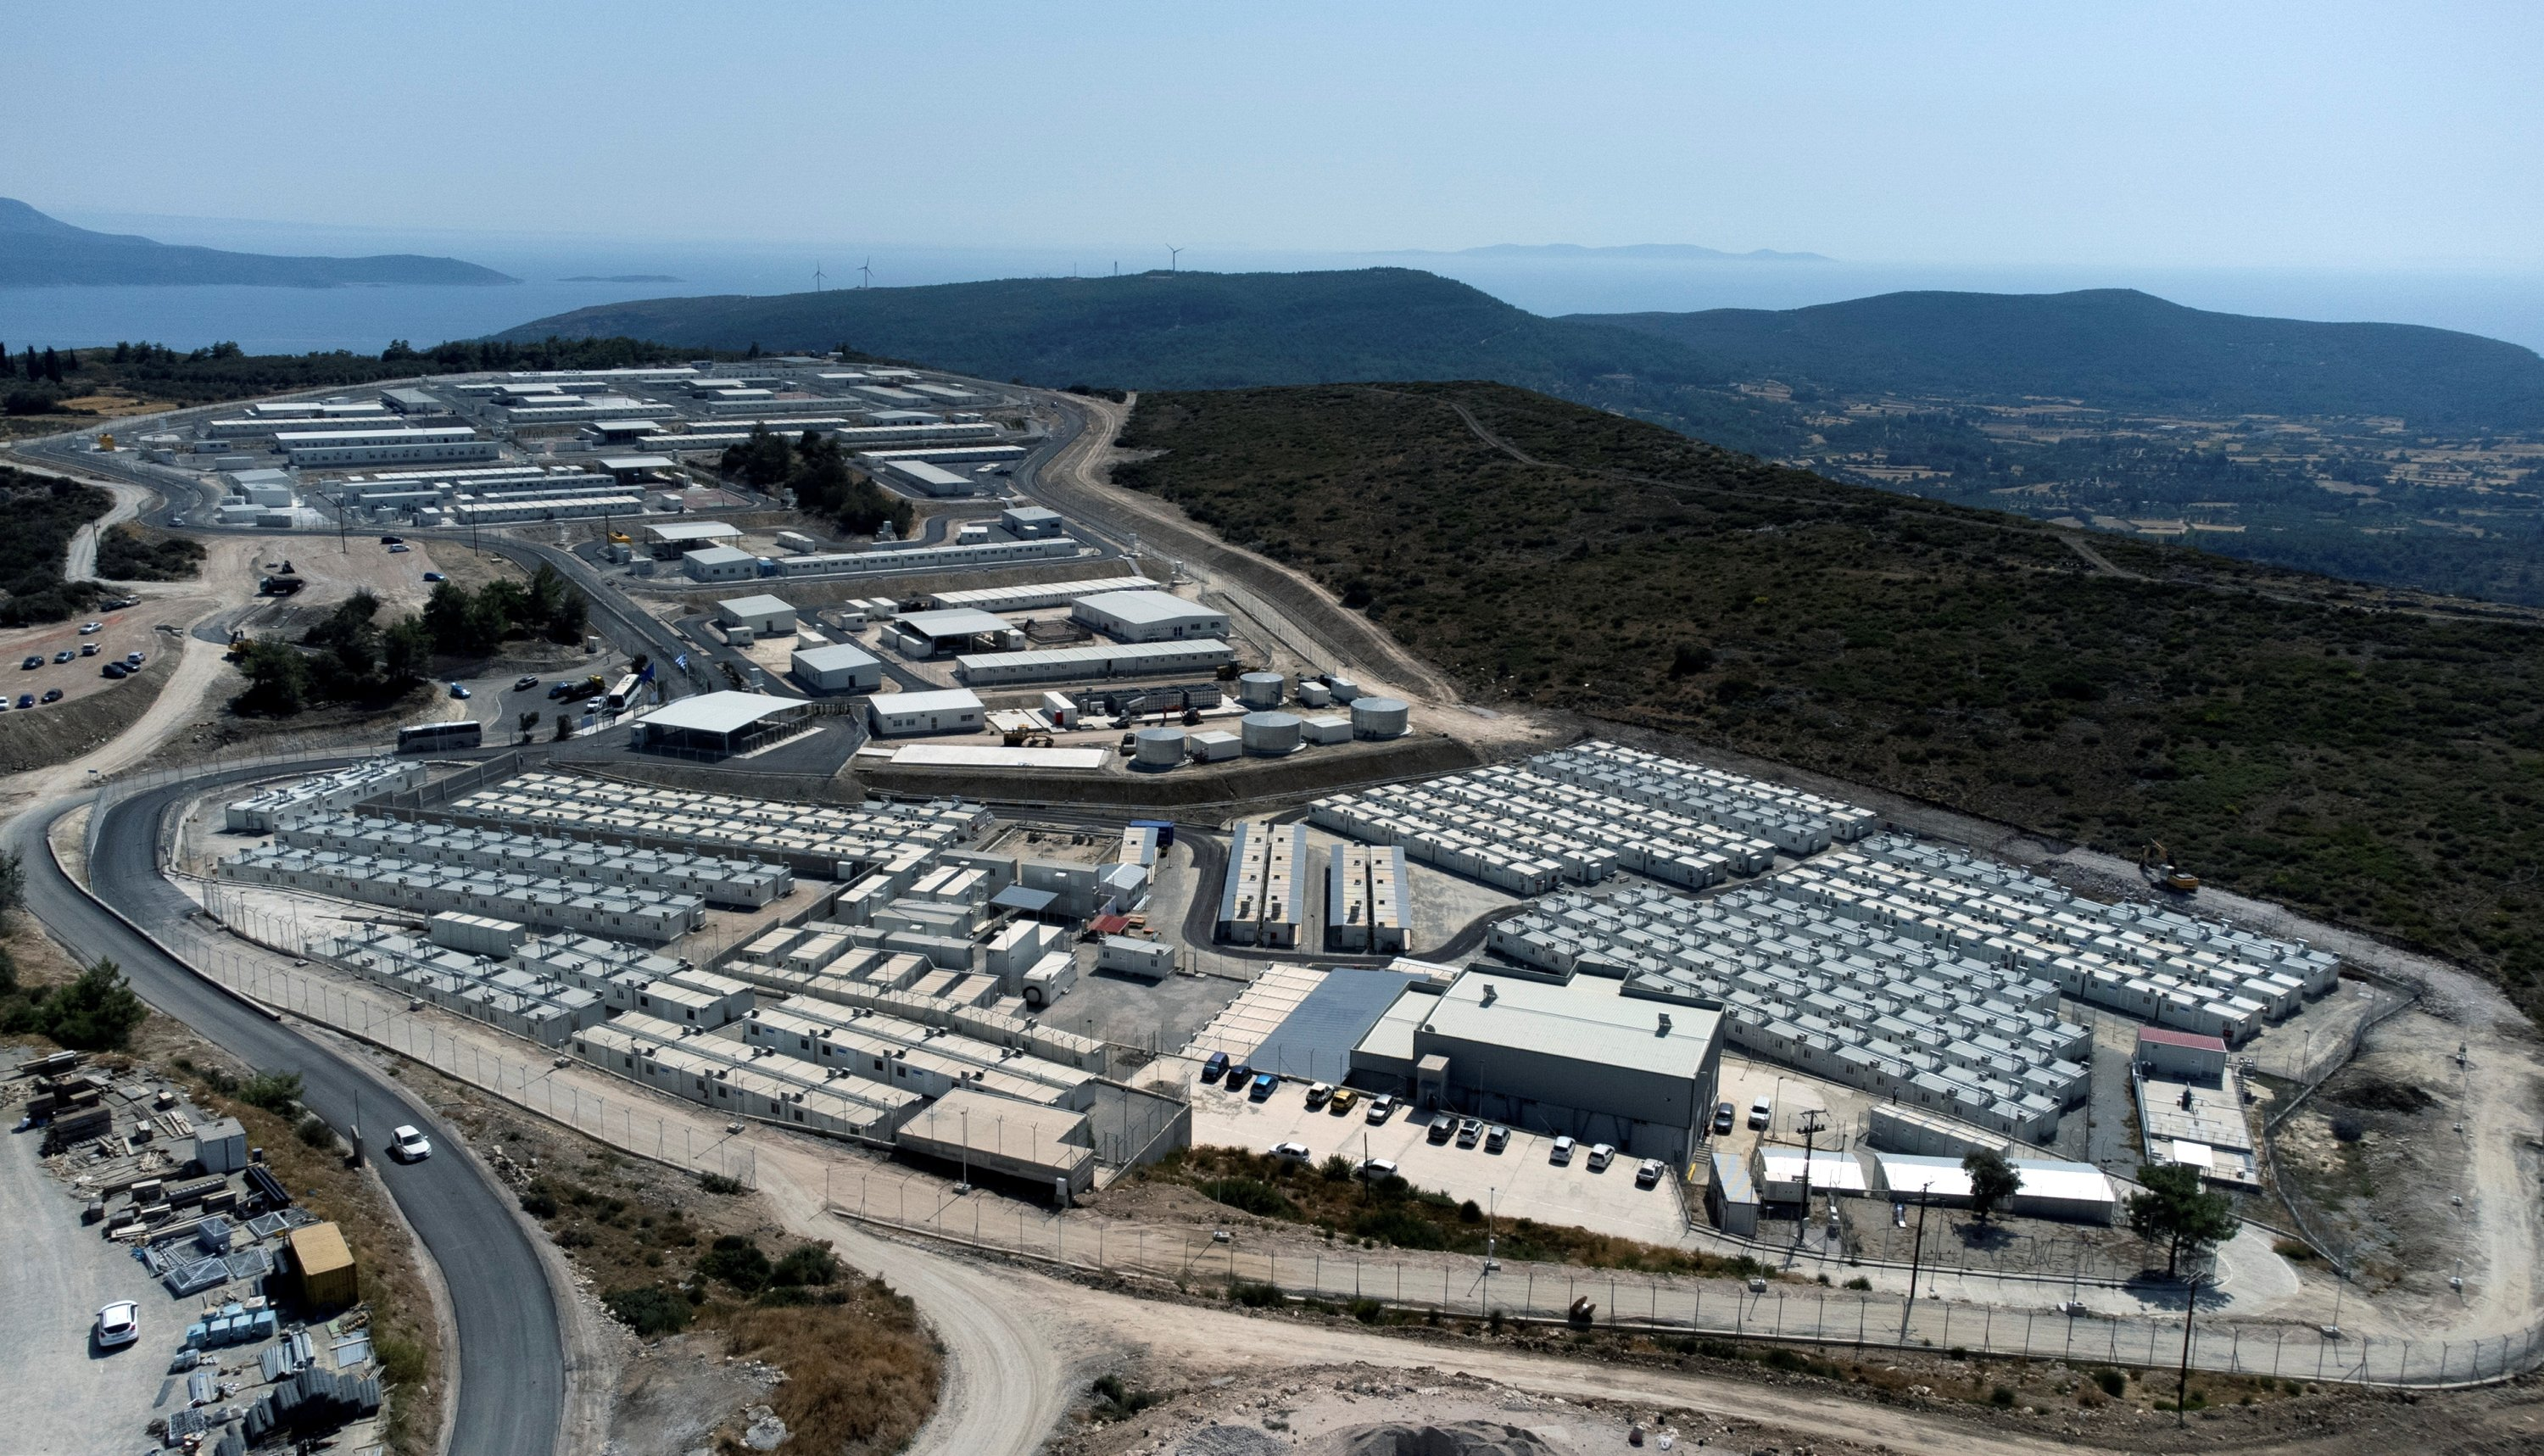 An aerial view of the new multi-purpose reception and identification migrant center that was constructed near Vathy, on the eastern Aegean island of Samos, Greece, Sept. 18, 2021. (Reuters Photo)